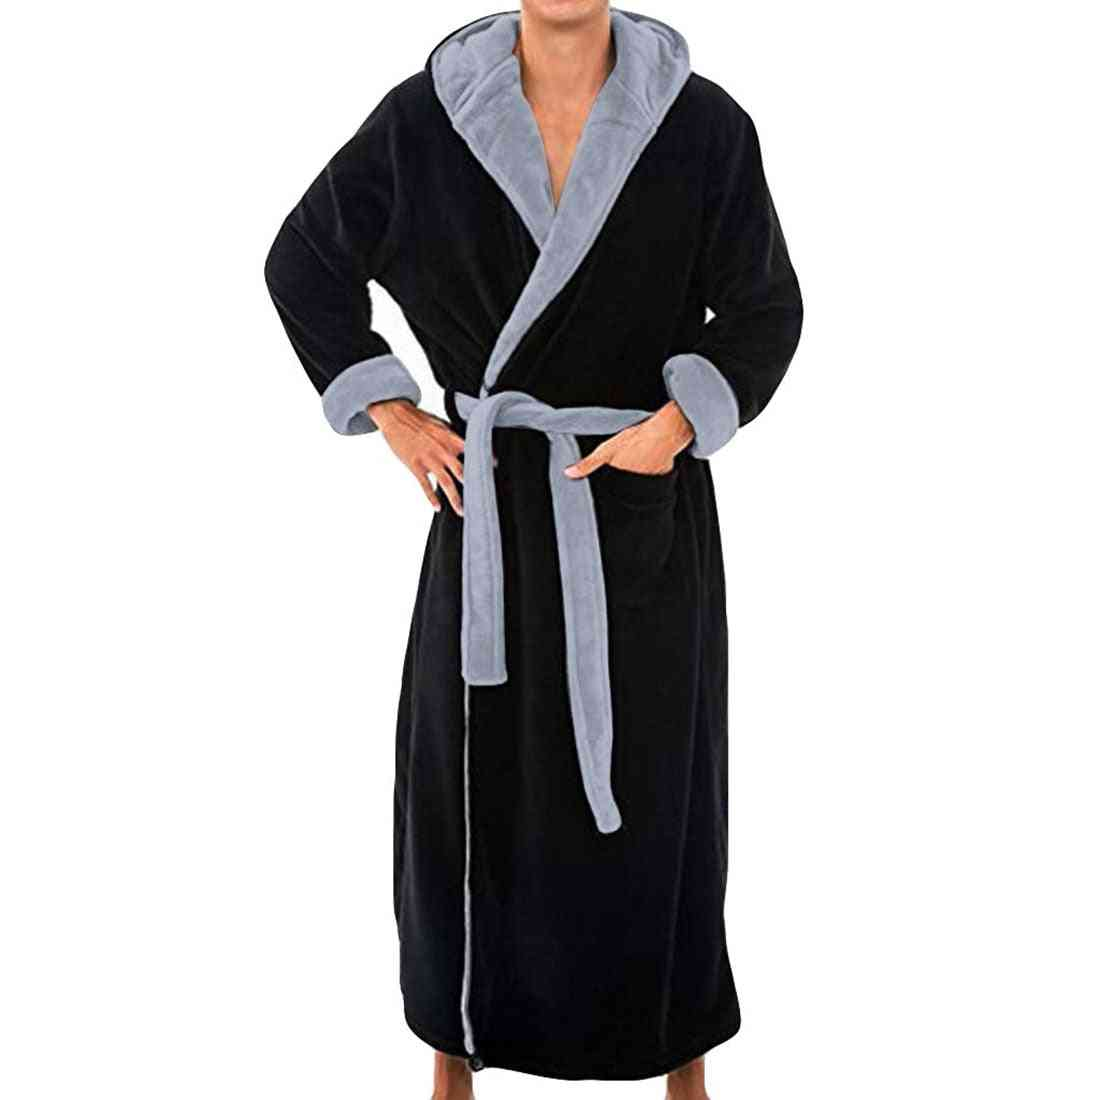 Flannel Hooded Thick Casual Winter Autumn Long Kimono Robe Pajama Nightgown